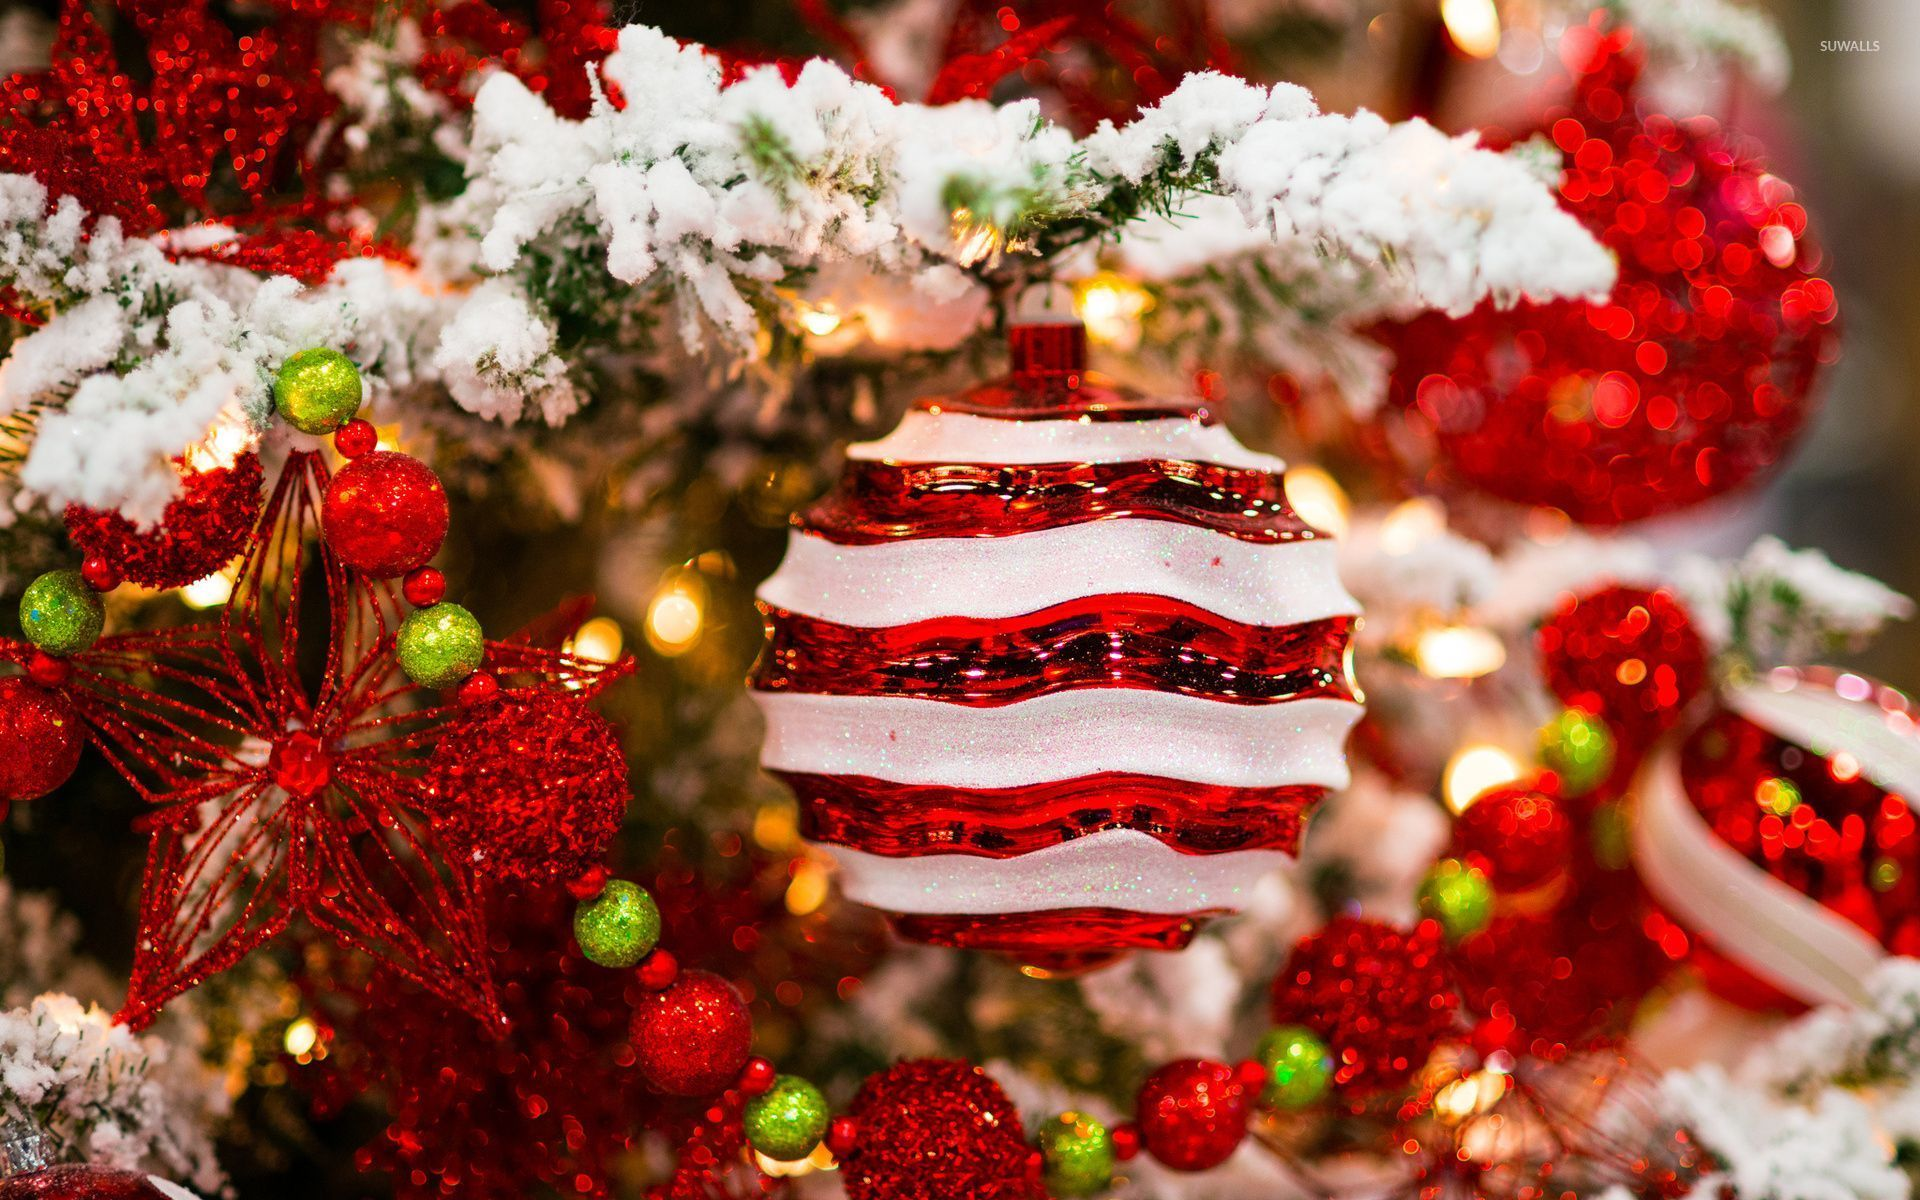 Red And White Decorations In The Snowy Christmas Tree 52001 1920×1200 Wallpaper